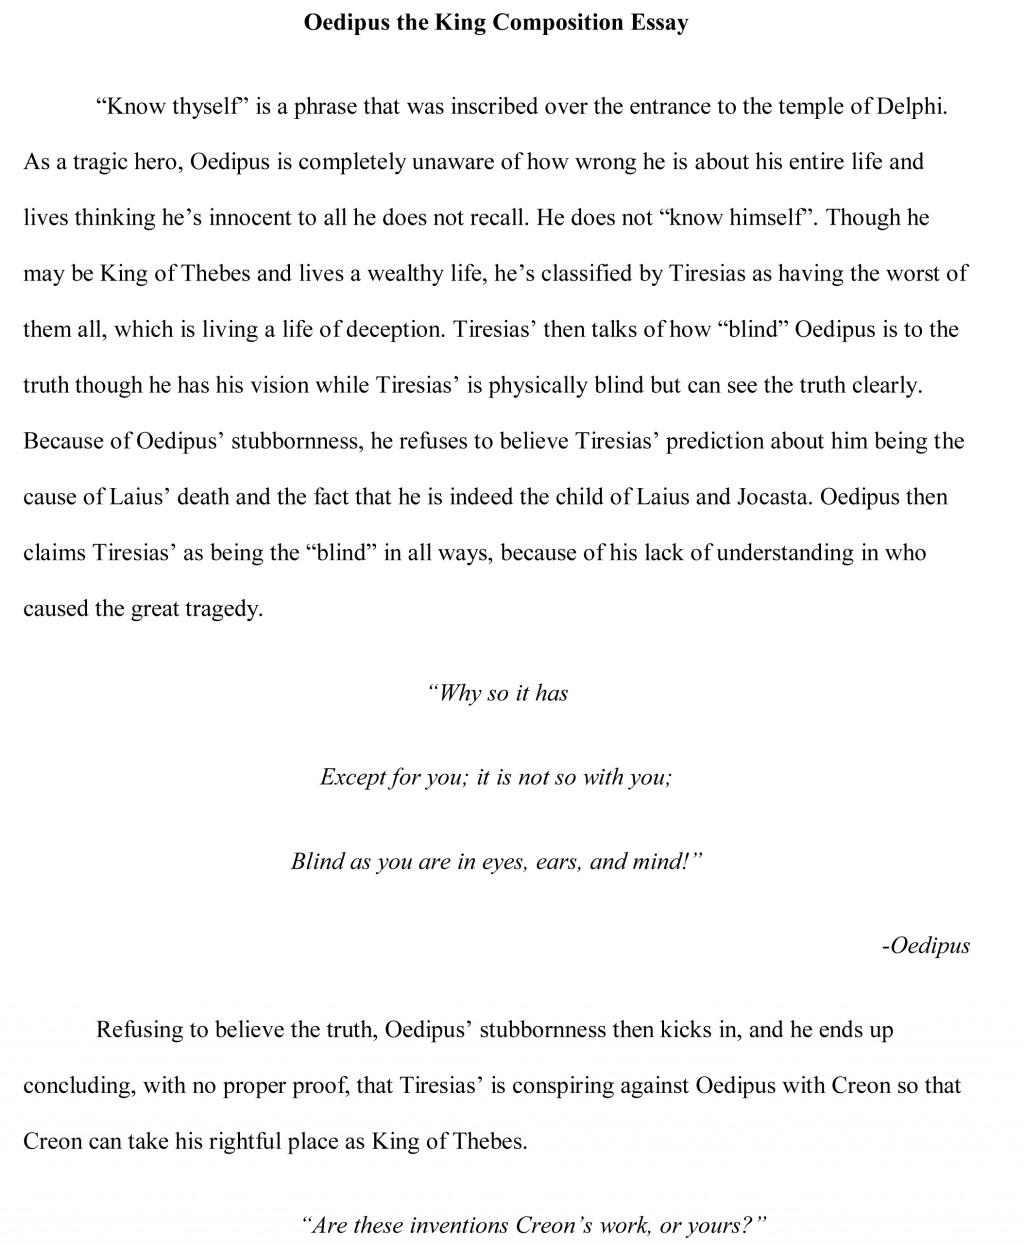 003 Essay Example Oedipus Free Sample My Real Life Fascinating Hero Unsung In Secret As A Large